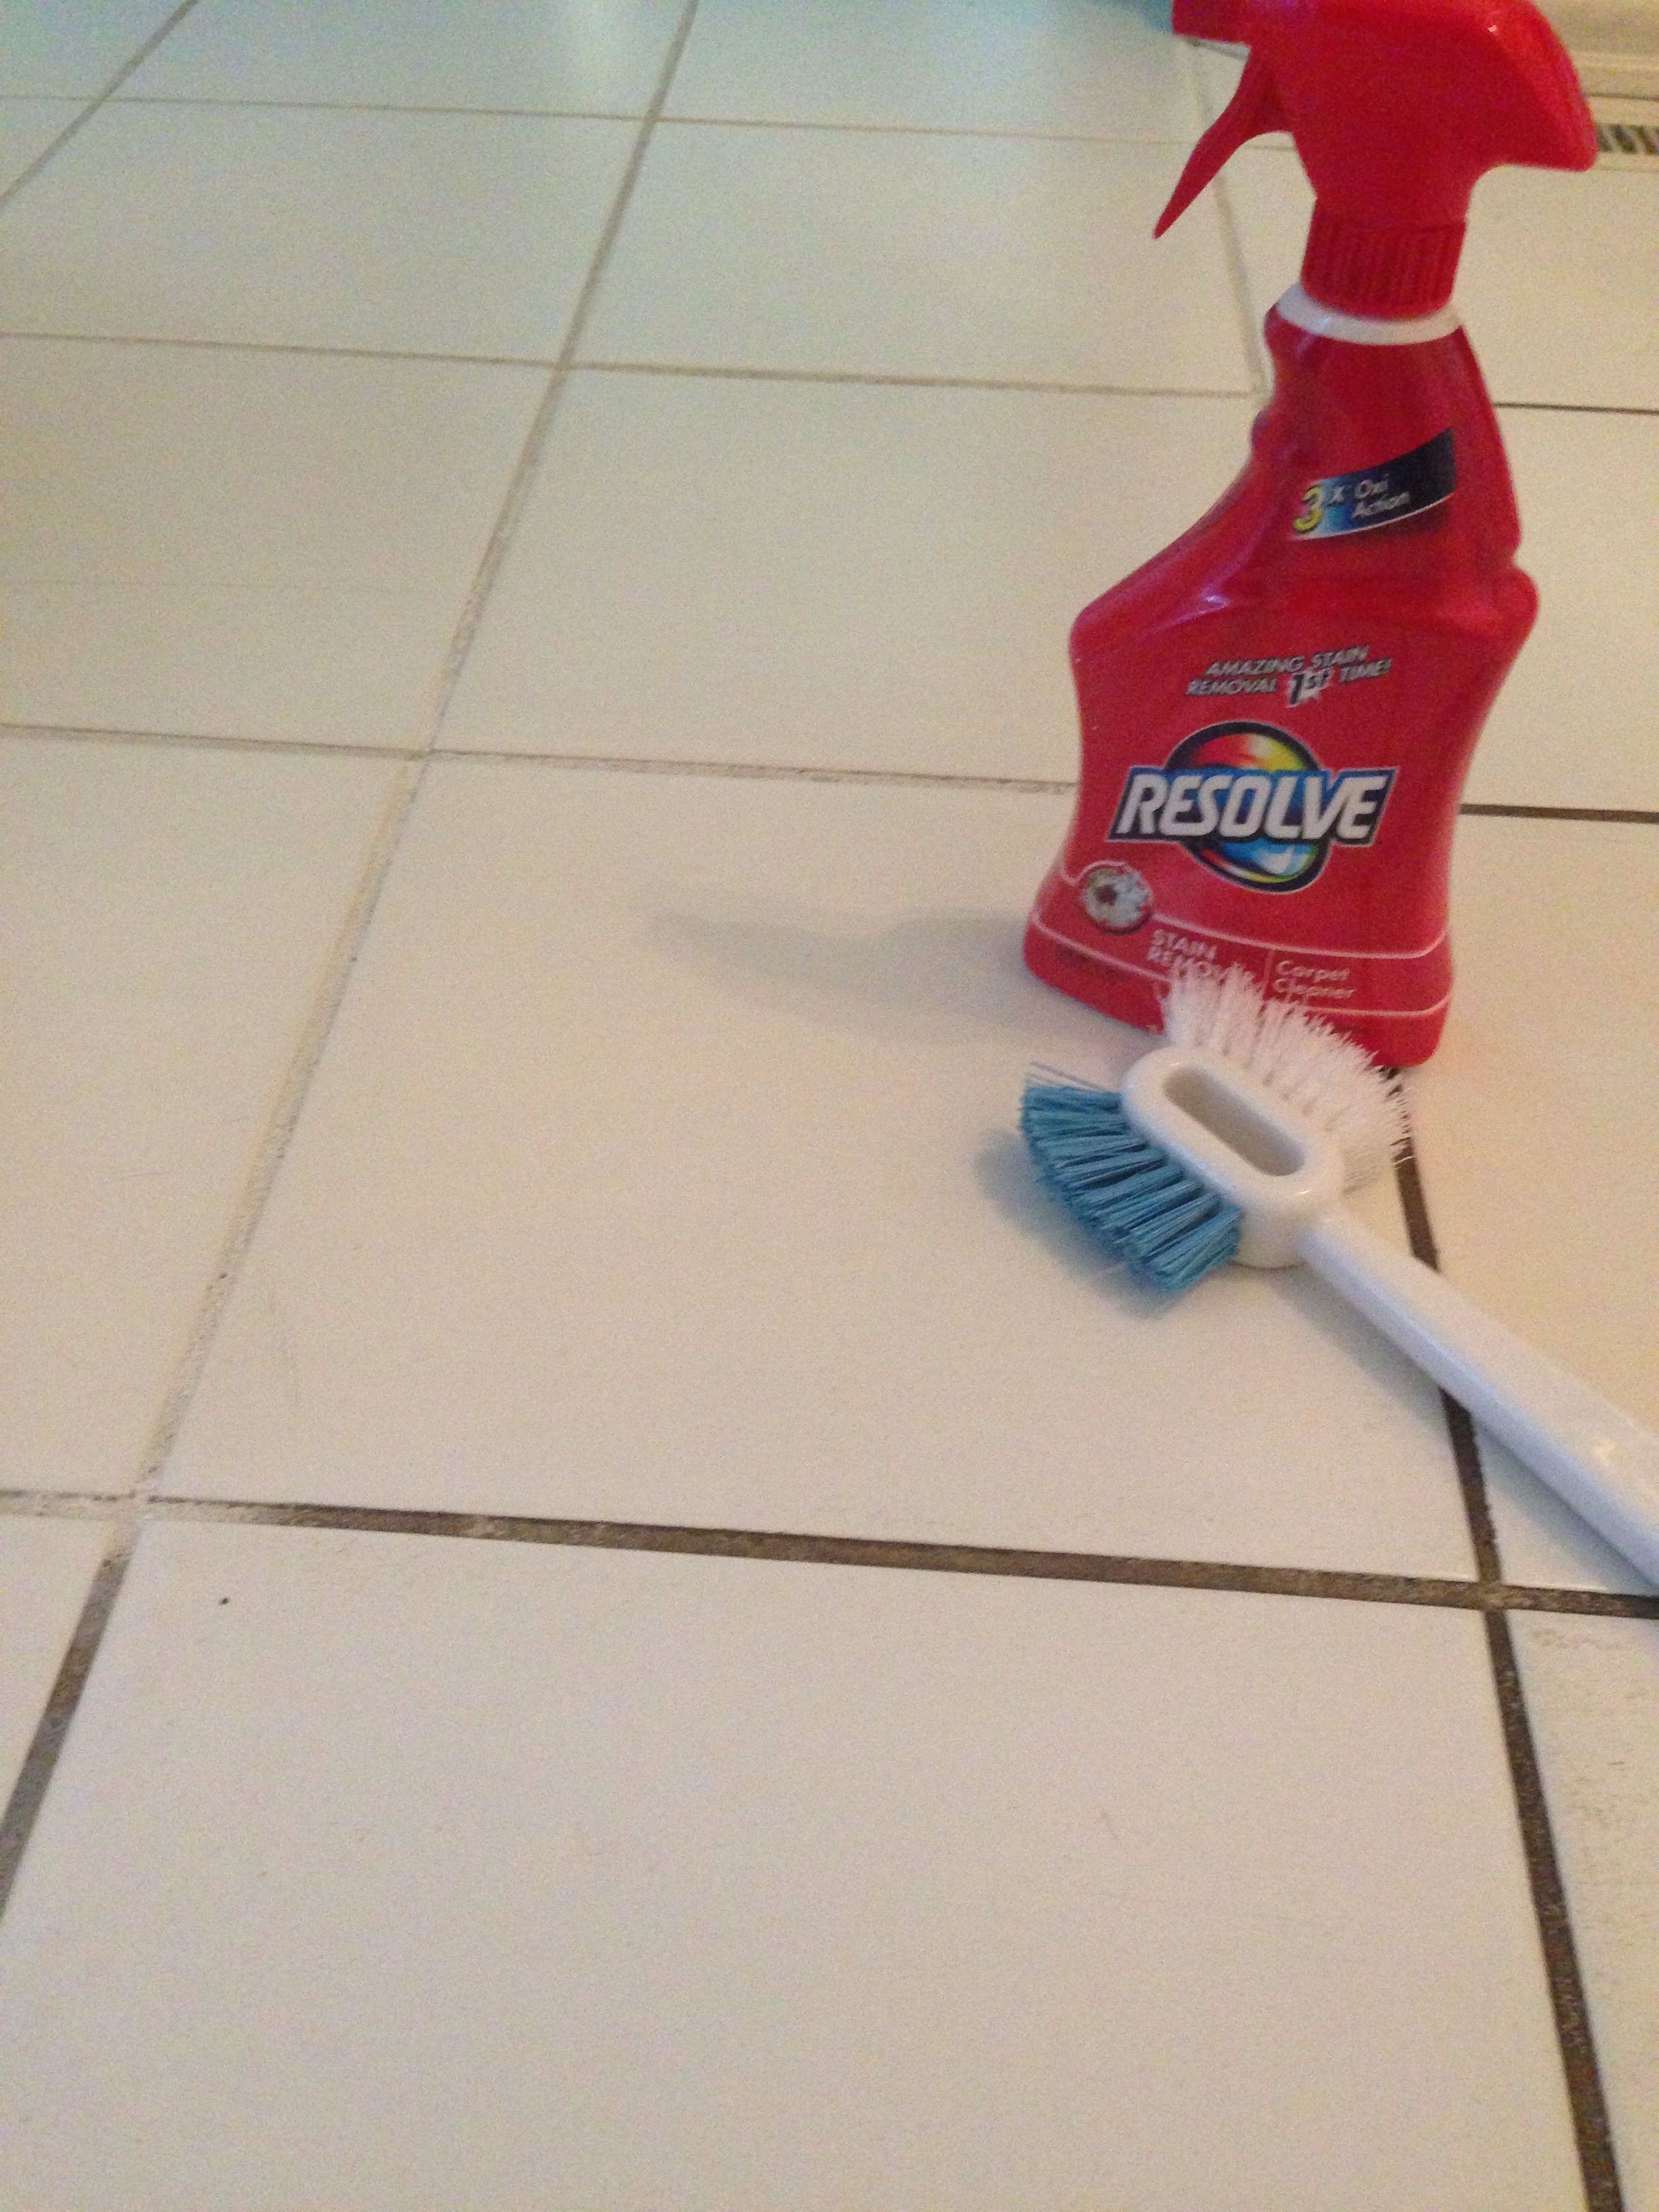 Resolve Carpet Cleaner To Clean Grout DIY Cleaning Products - Cleaning grout off porcelain tile